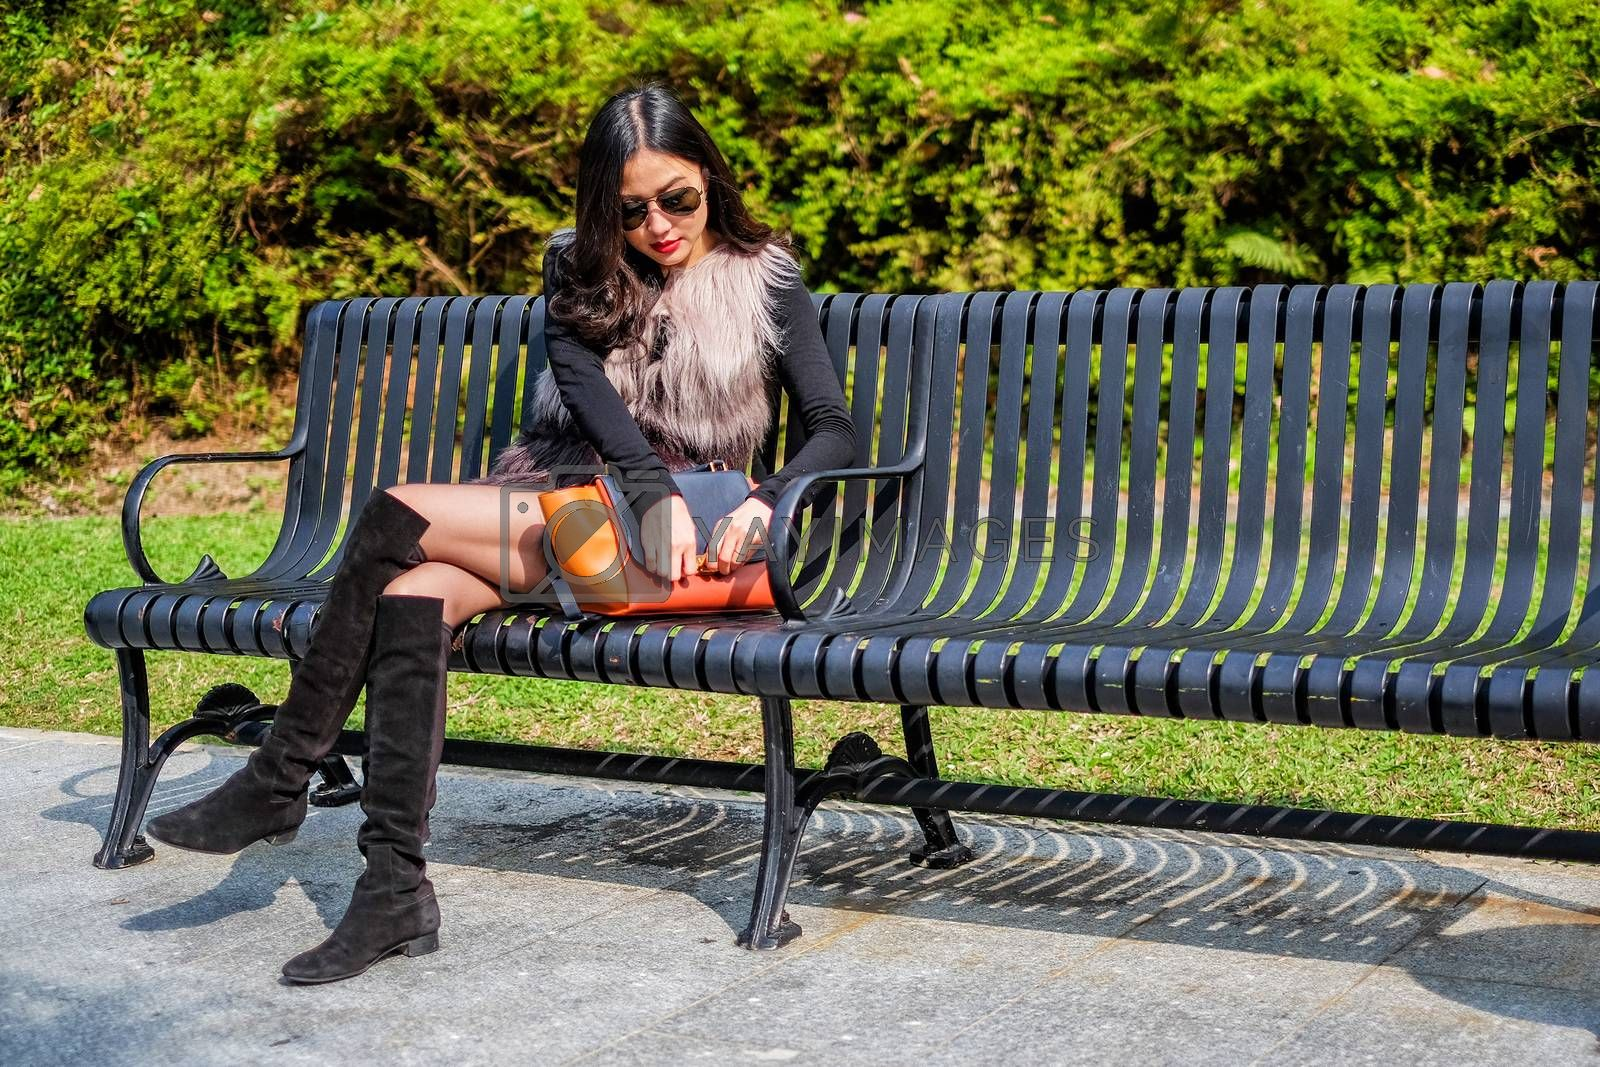 Beautiful young woman sunglass resting in park